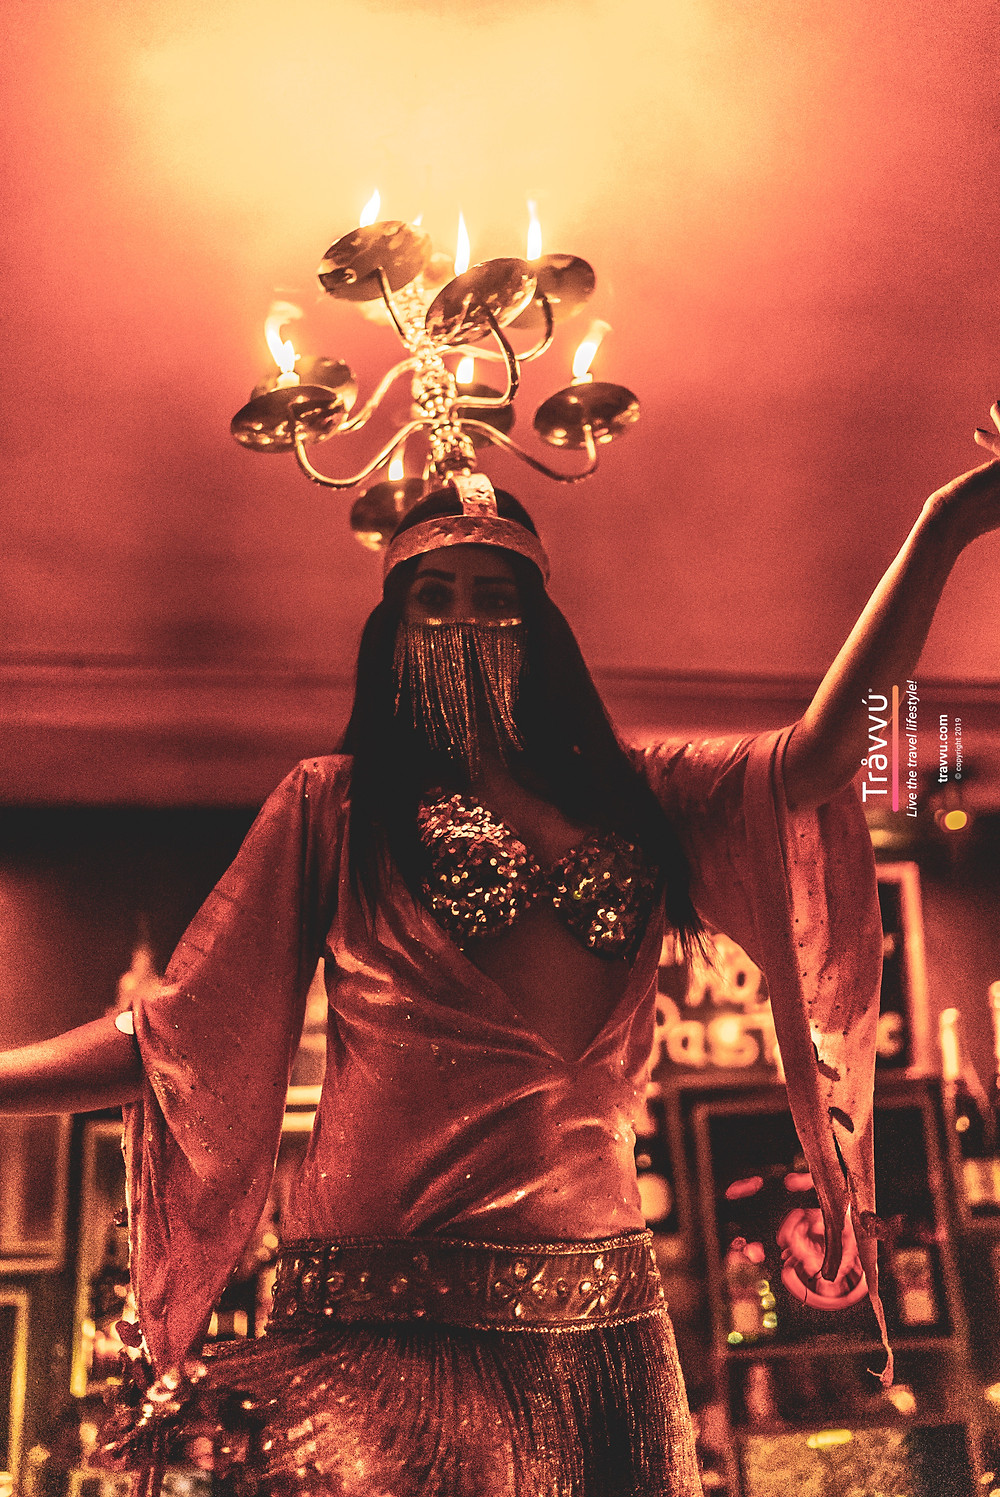 A belly dancer balances candles on her head as she dances around the diners tables.